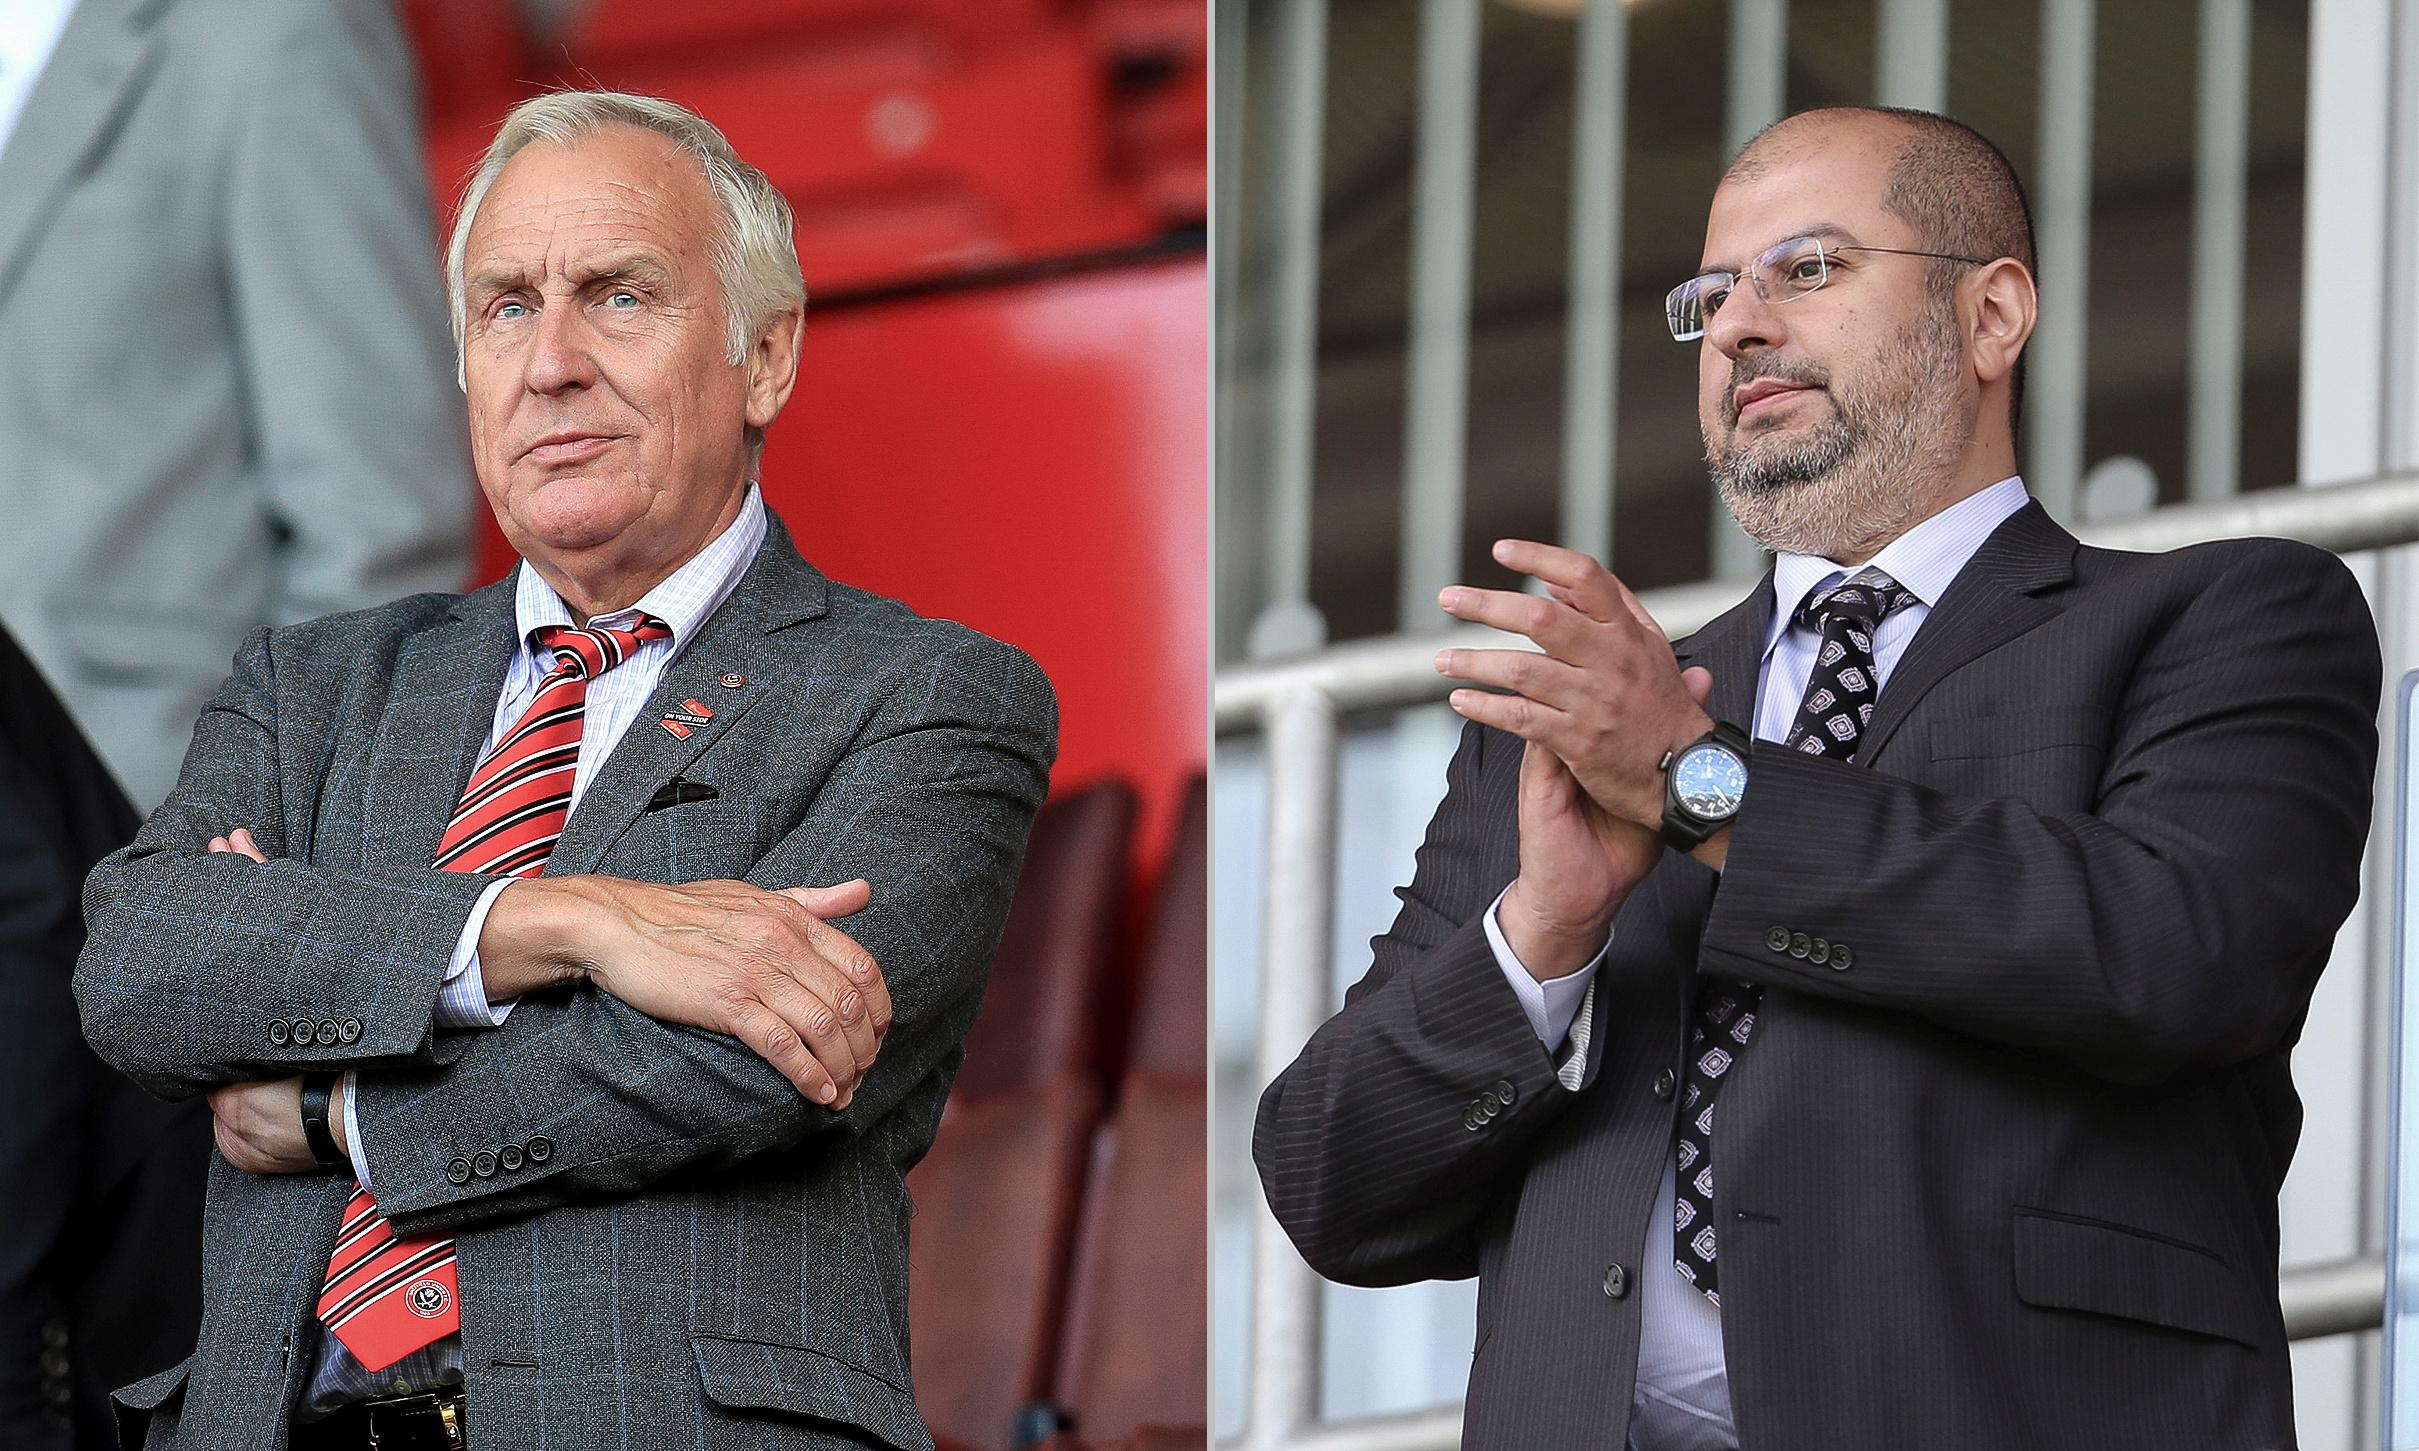 Sheffield United's Prince Abdullah defends Bin Ladens over club links